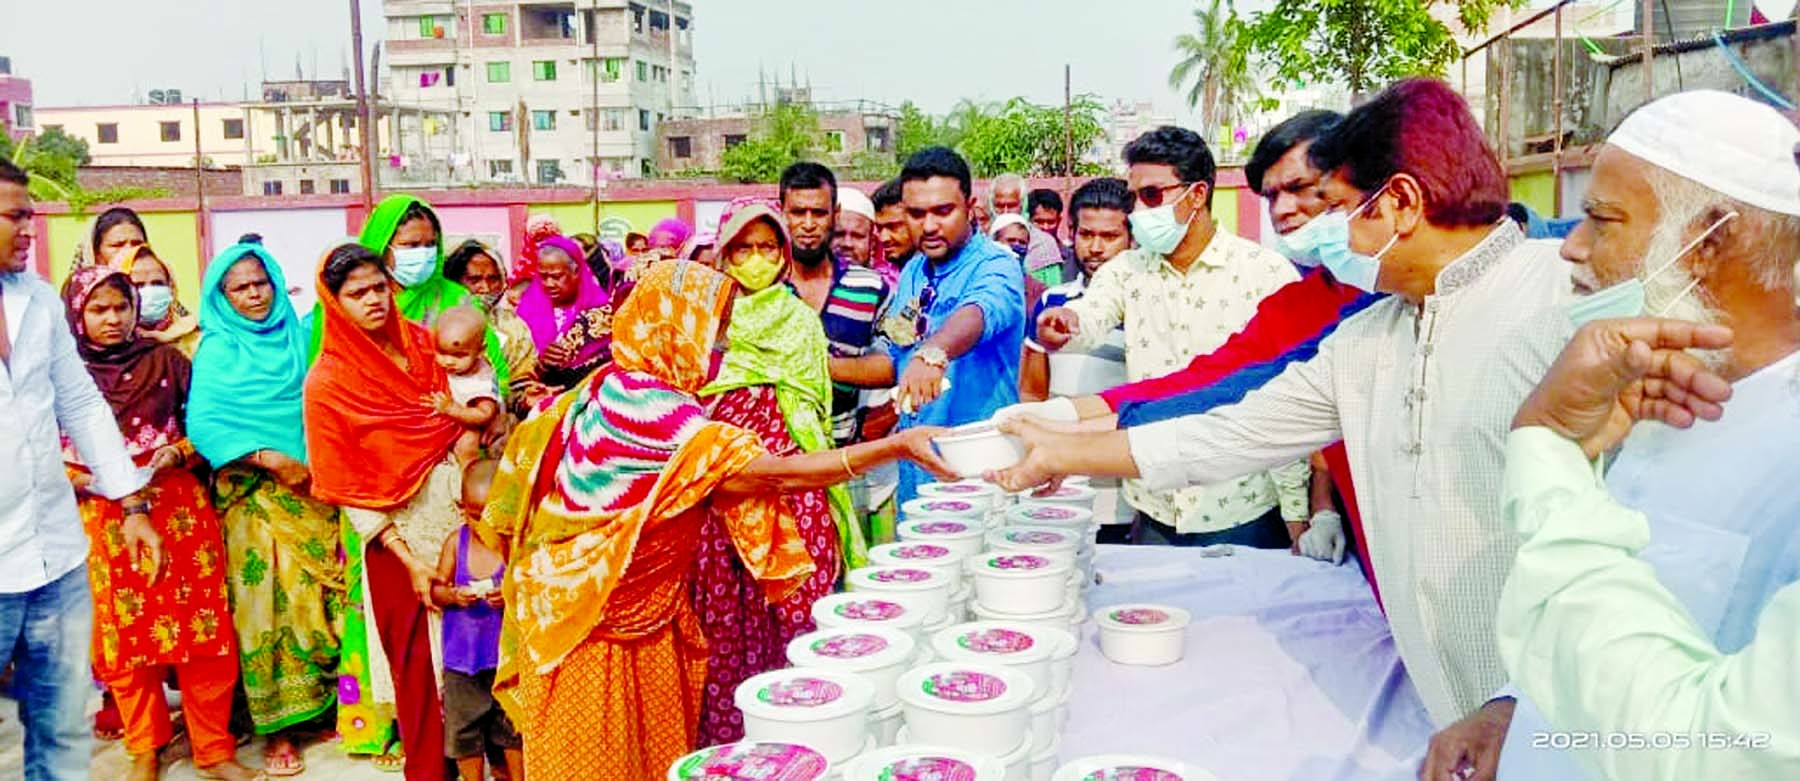 Senior Vice-President of Dhaka Mahanagar Dakshin Awami Juba League Ahmed Ullah Madhu distributes relief materials among the poor at Bamoil Eidgah field in the city on Wednesday. DSCC Mayor Barrister Sheikh Fazle Nur Taposh and Chairman of Bangladesh Awami Juba League Sheikh Fazle Shams Parosh assisted the programme.